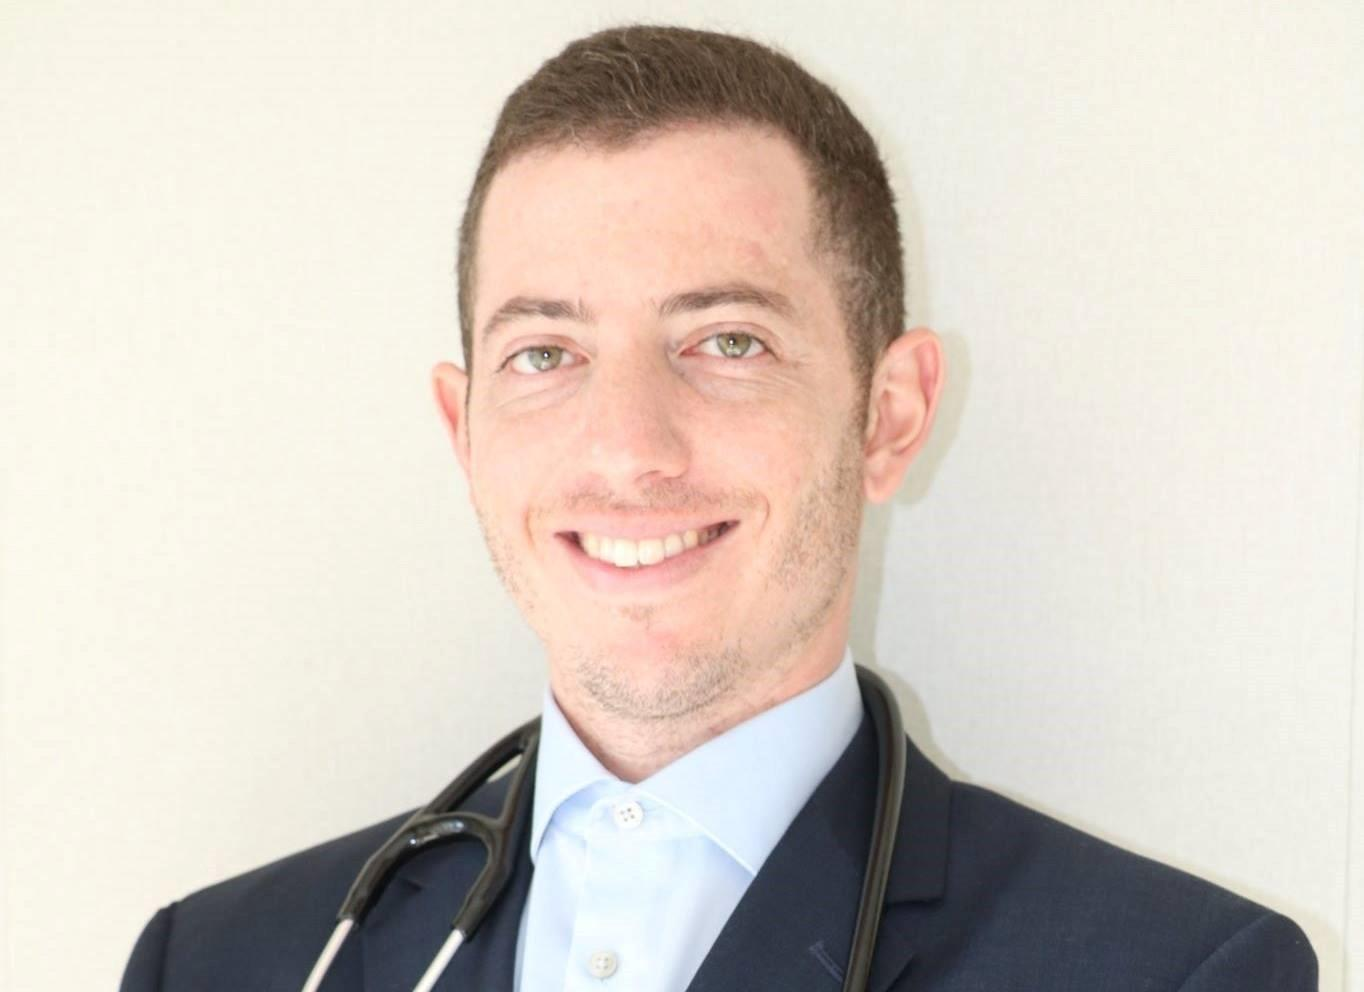 Dr. Andrew Pleener Advises to Exercise Mental Health Along With Physical Being